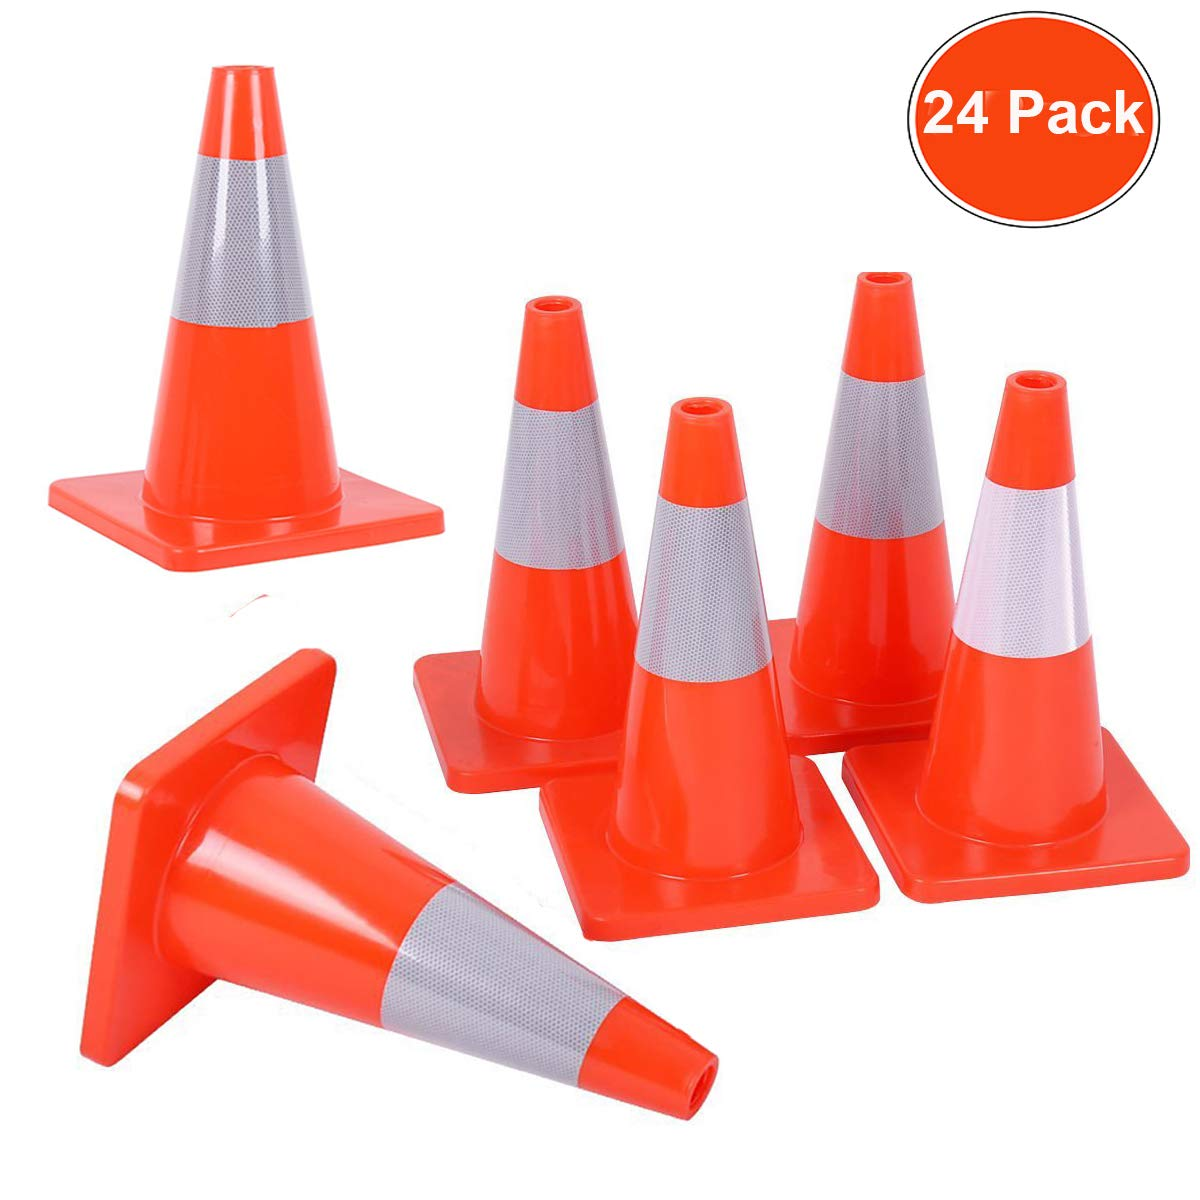 Reliancer 24PCS 18'' Traffic Cones PVC Safety Road Parking Cones Weighted Hazard Cones Construction Cones for Traffic Fluorescent Orange w/4'' Reflective Strips Collar